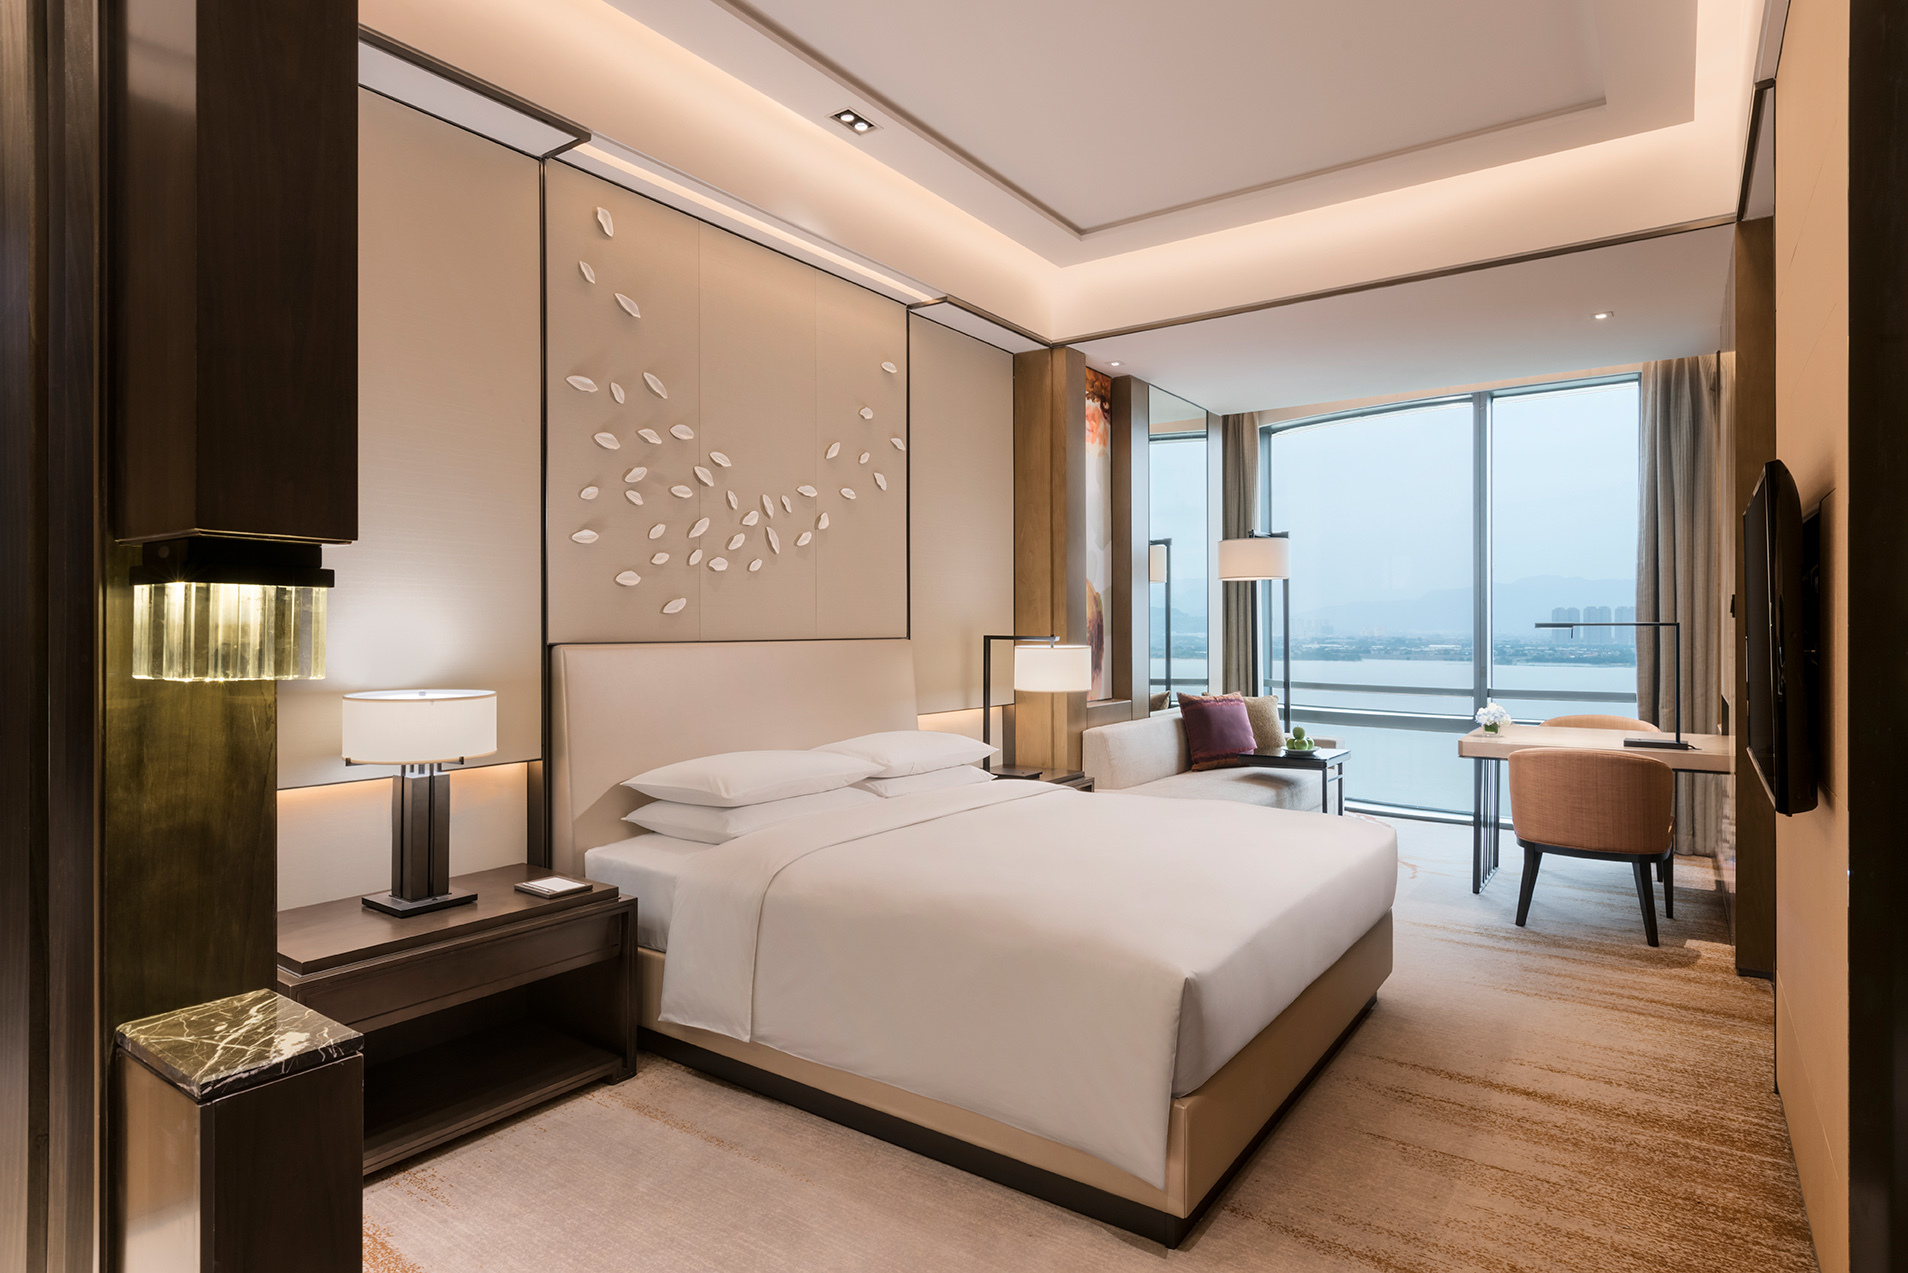 Hyatt Regency Fuzhou Cangshan features 226 intuitively designed rooms and suites. (Photo: Business Wire)